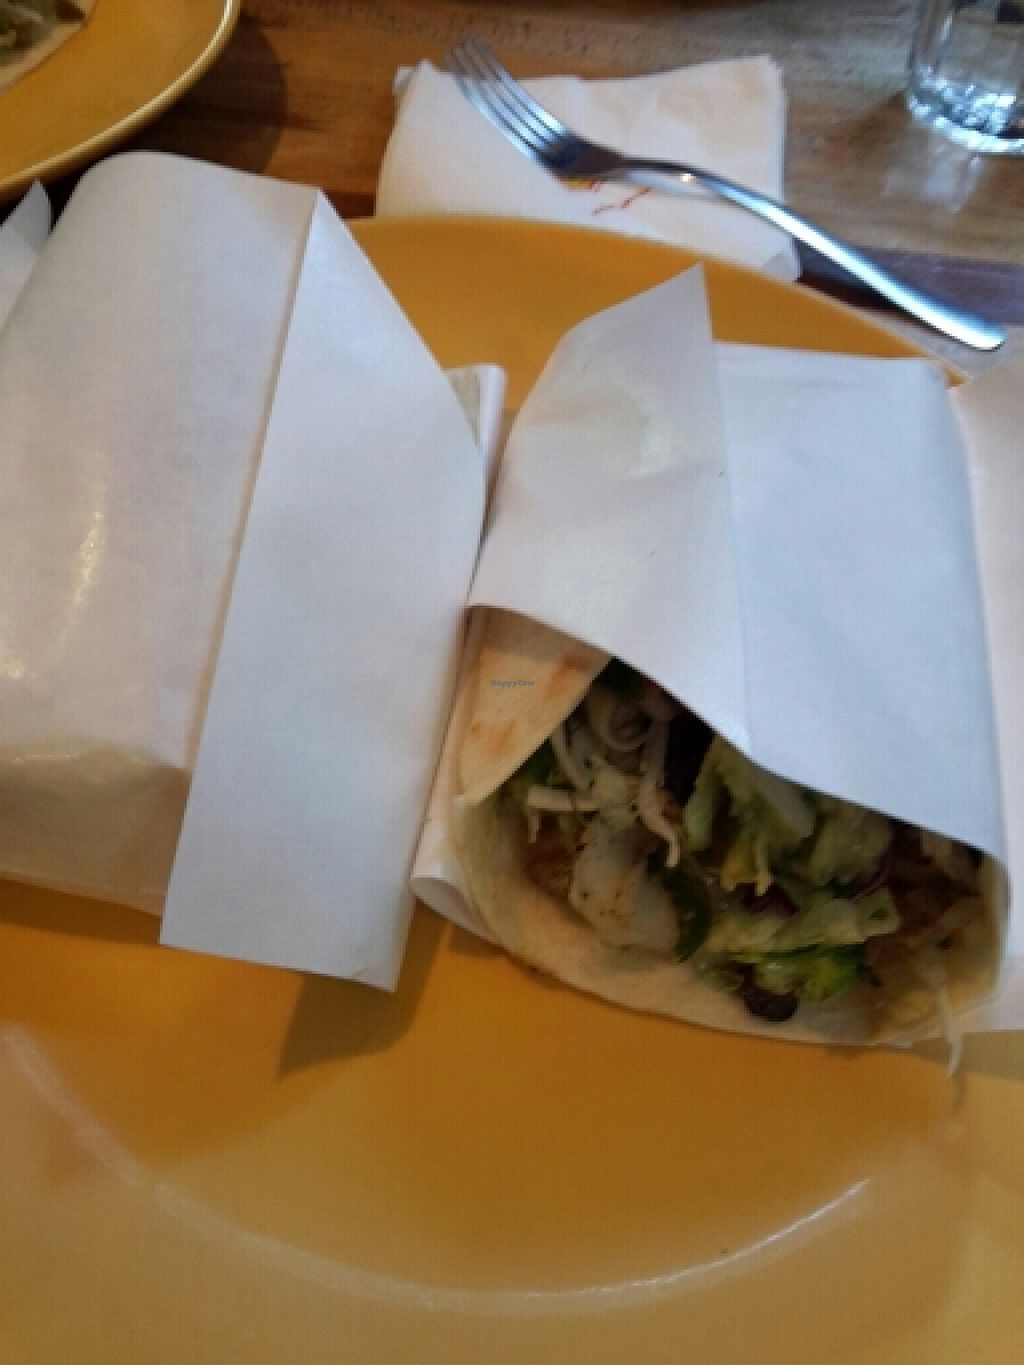 """Photo of Dos Tacos - Gangnam  by <a href=""""/members/profile/KleinBiket"""">KleinBiket</a> <br/>burrito <br/> October 10, 2015  - <a href='/contact/abuse/image/50380/120937'>Report</a>"""